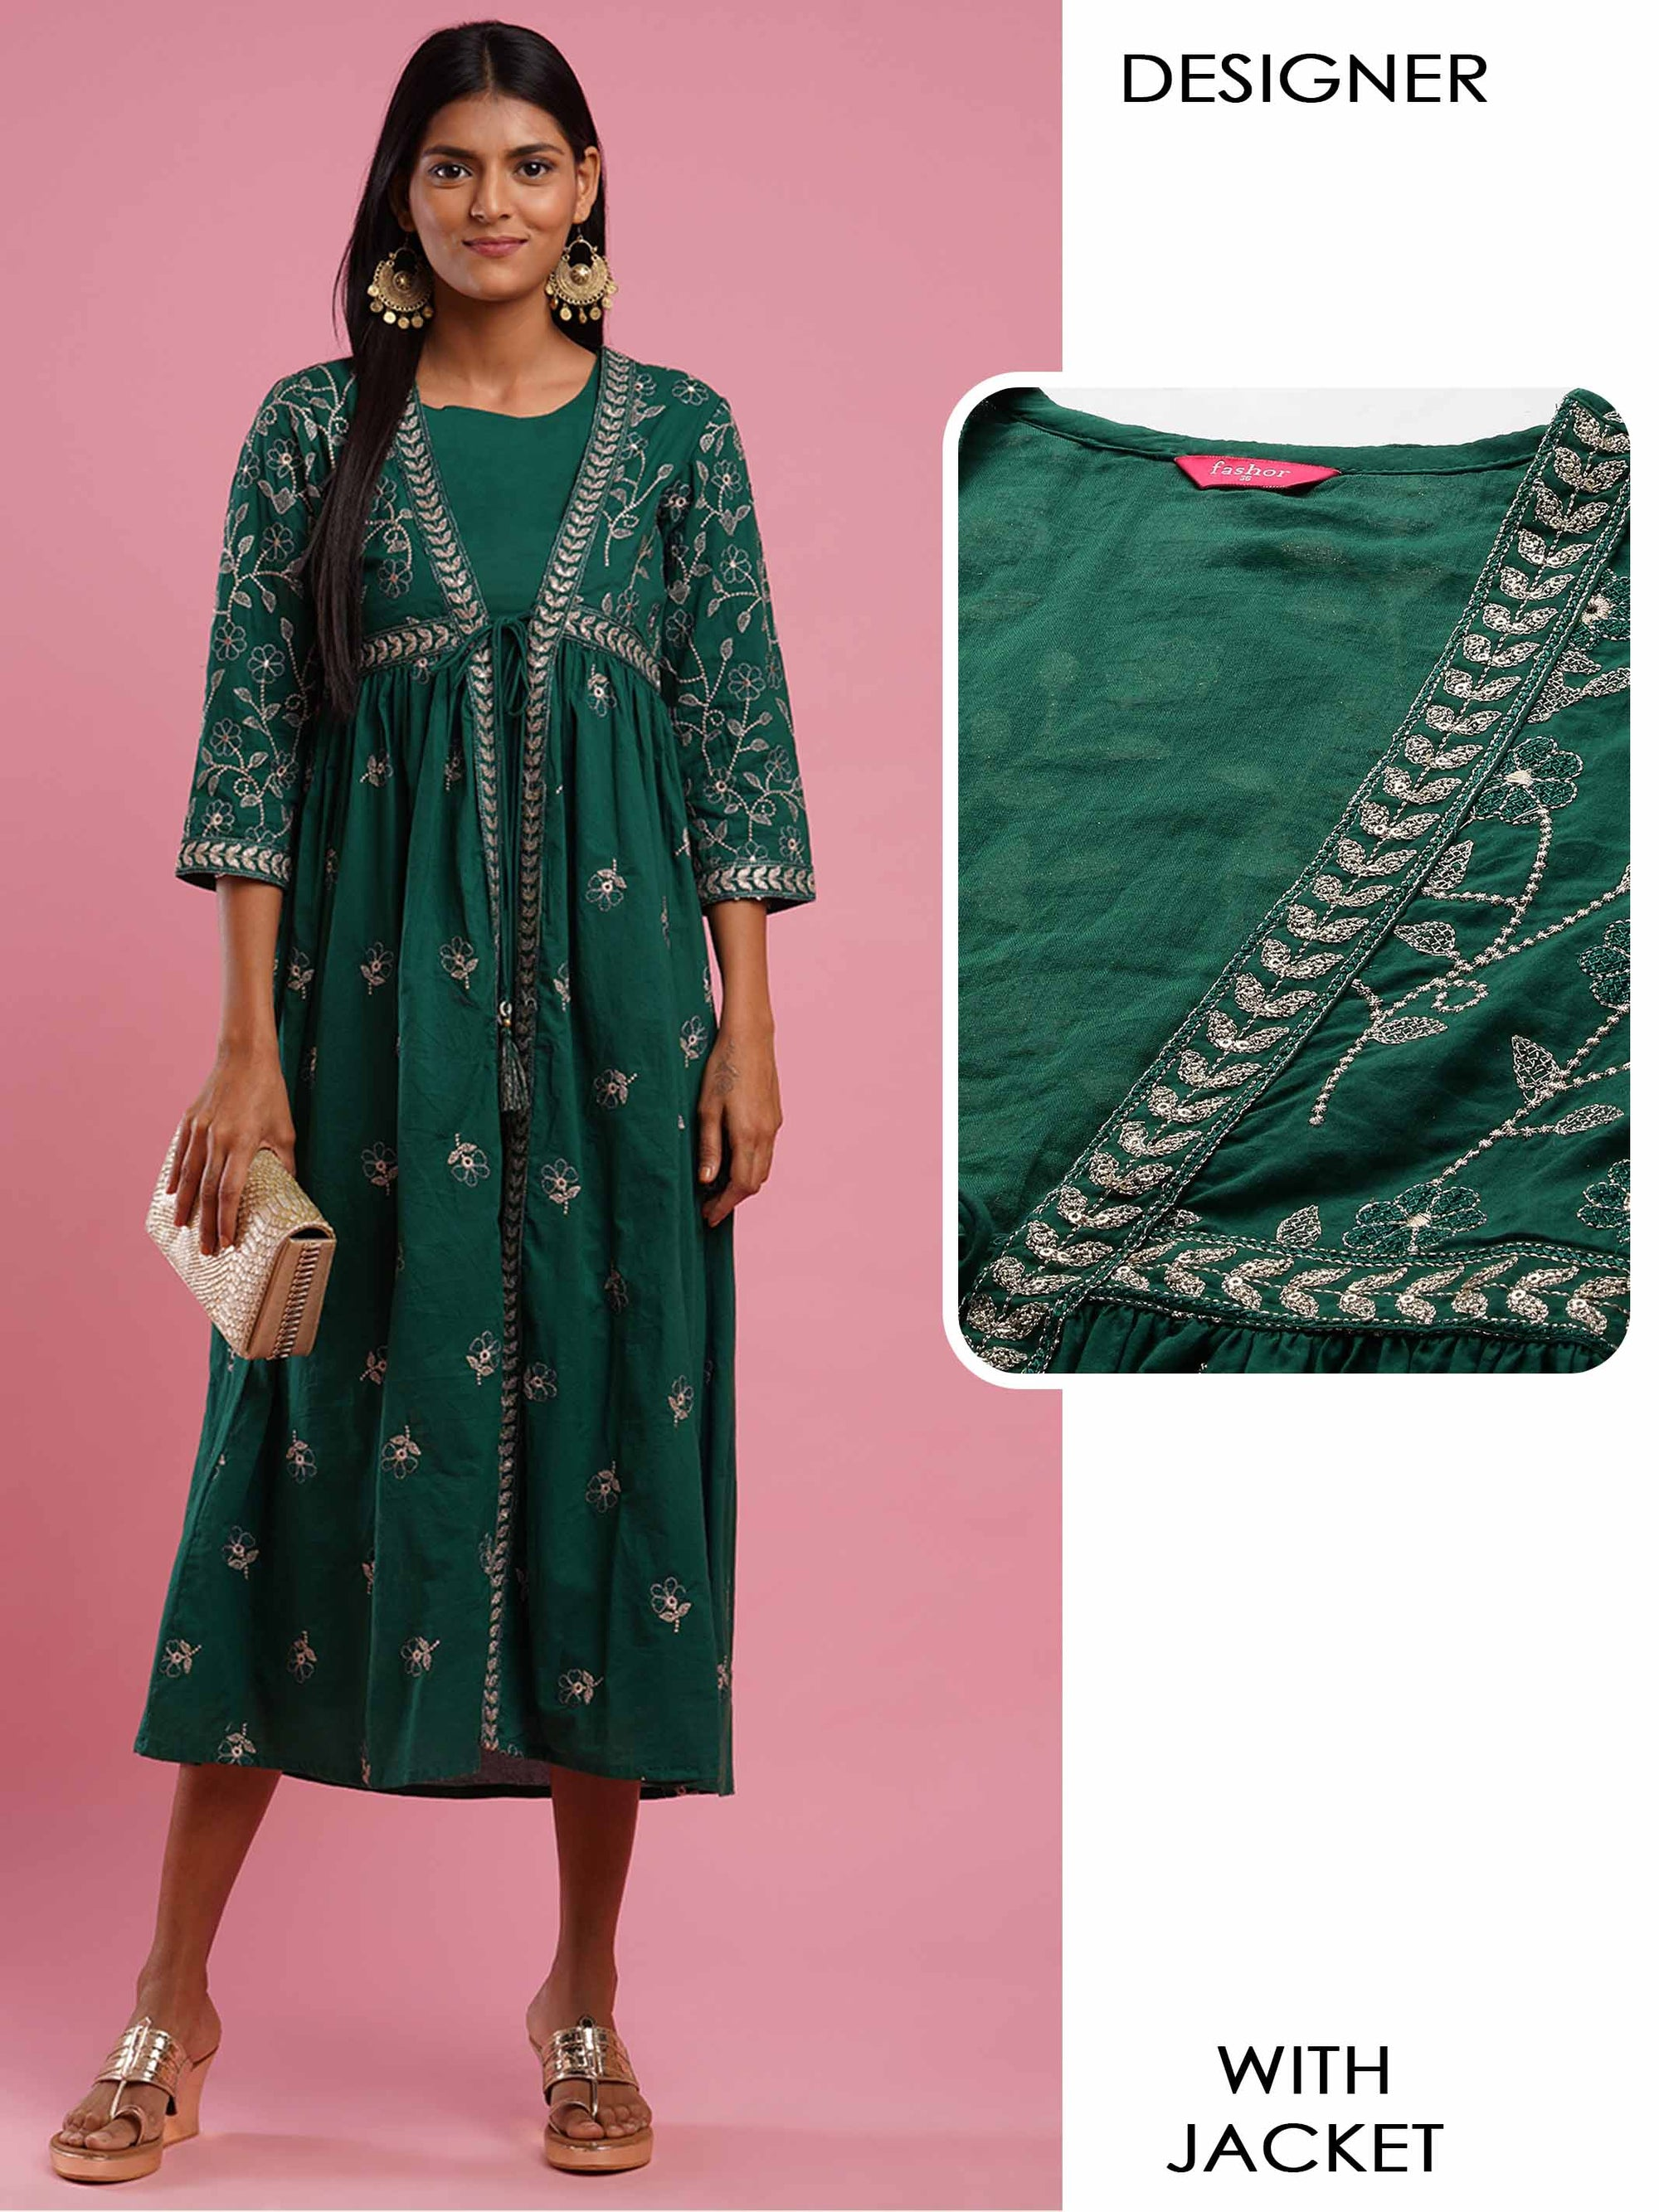 Dense Floral Embroidered Festive Jacket With Solid A-Line Slip Dress - Dark Green